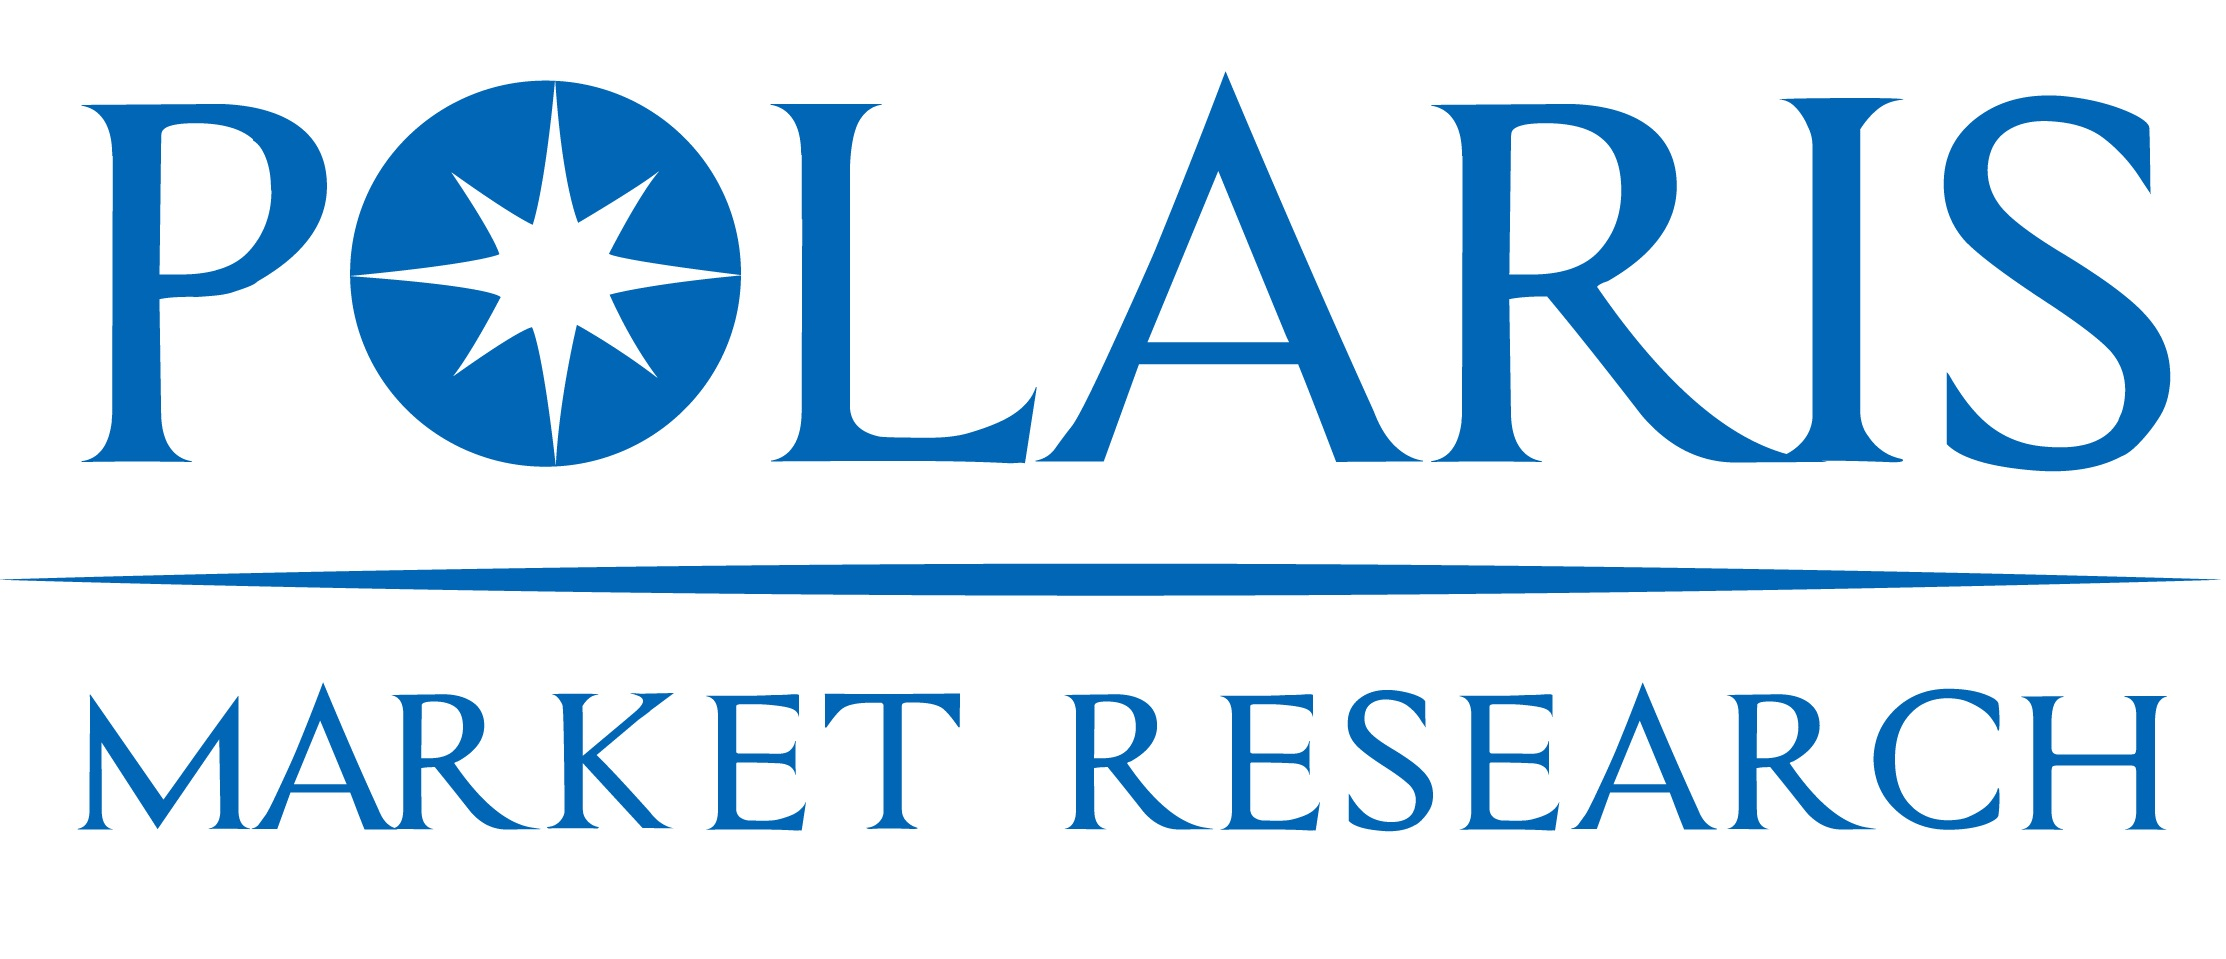 Nurse Call Systems Market Size Worth $3.06 Billion By 2028 | CAGR: 11.1%: Exclusive Report by Polaris Market Research